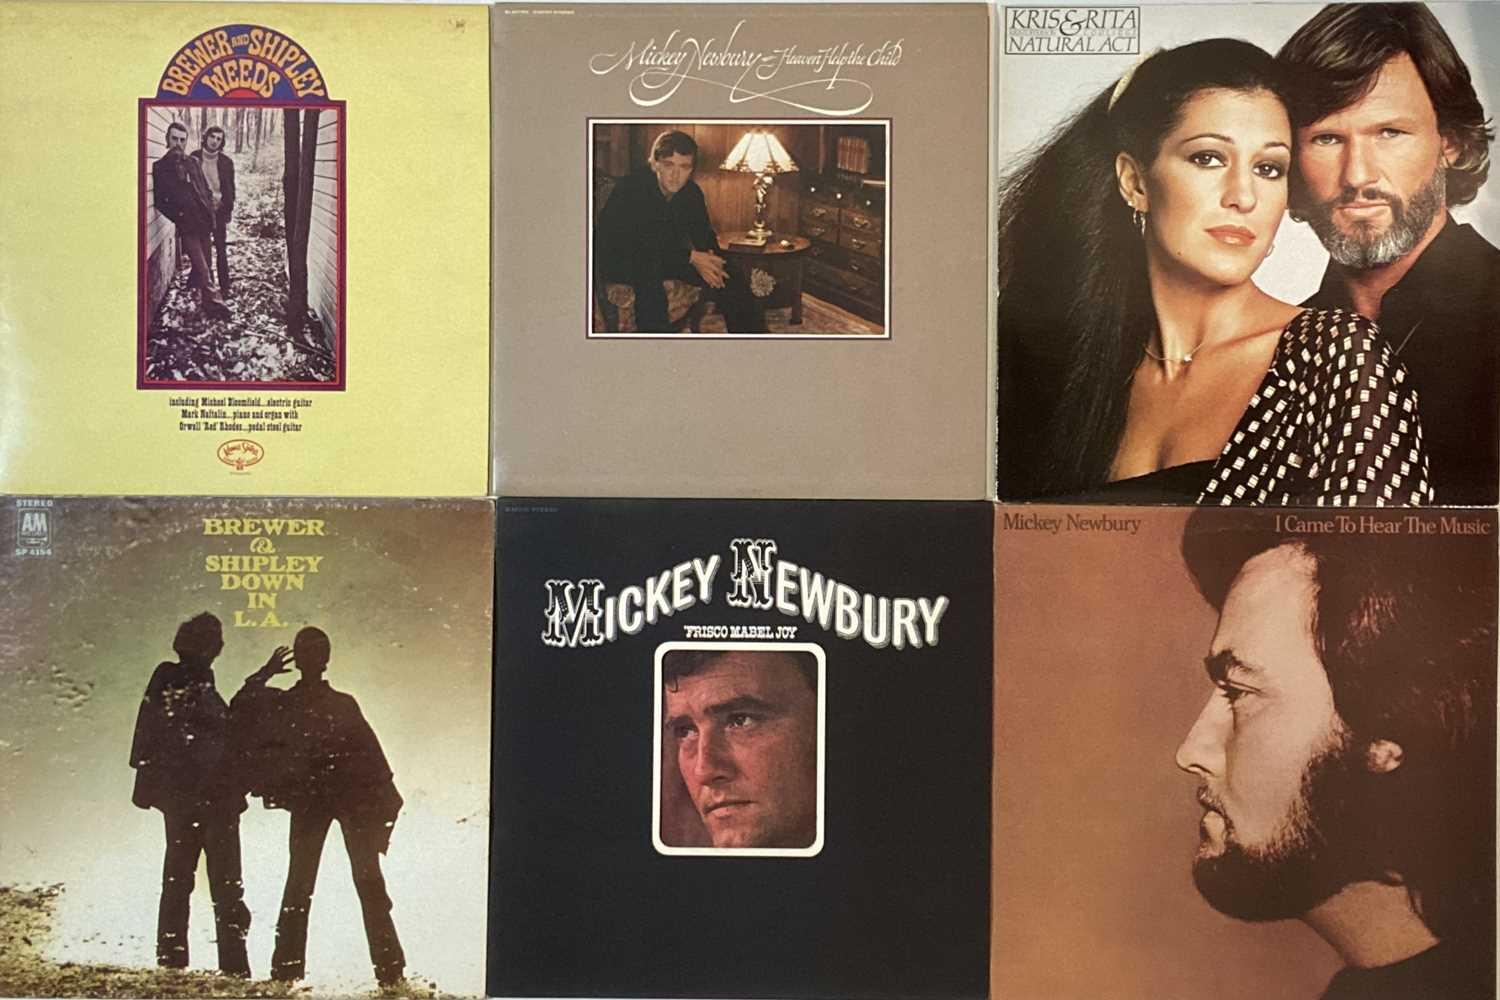 COUNTRY ROCK/R&R/AOR - LPs - Image 5 of 6